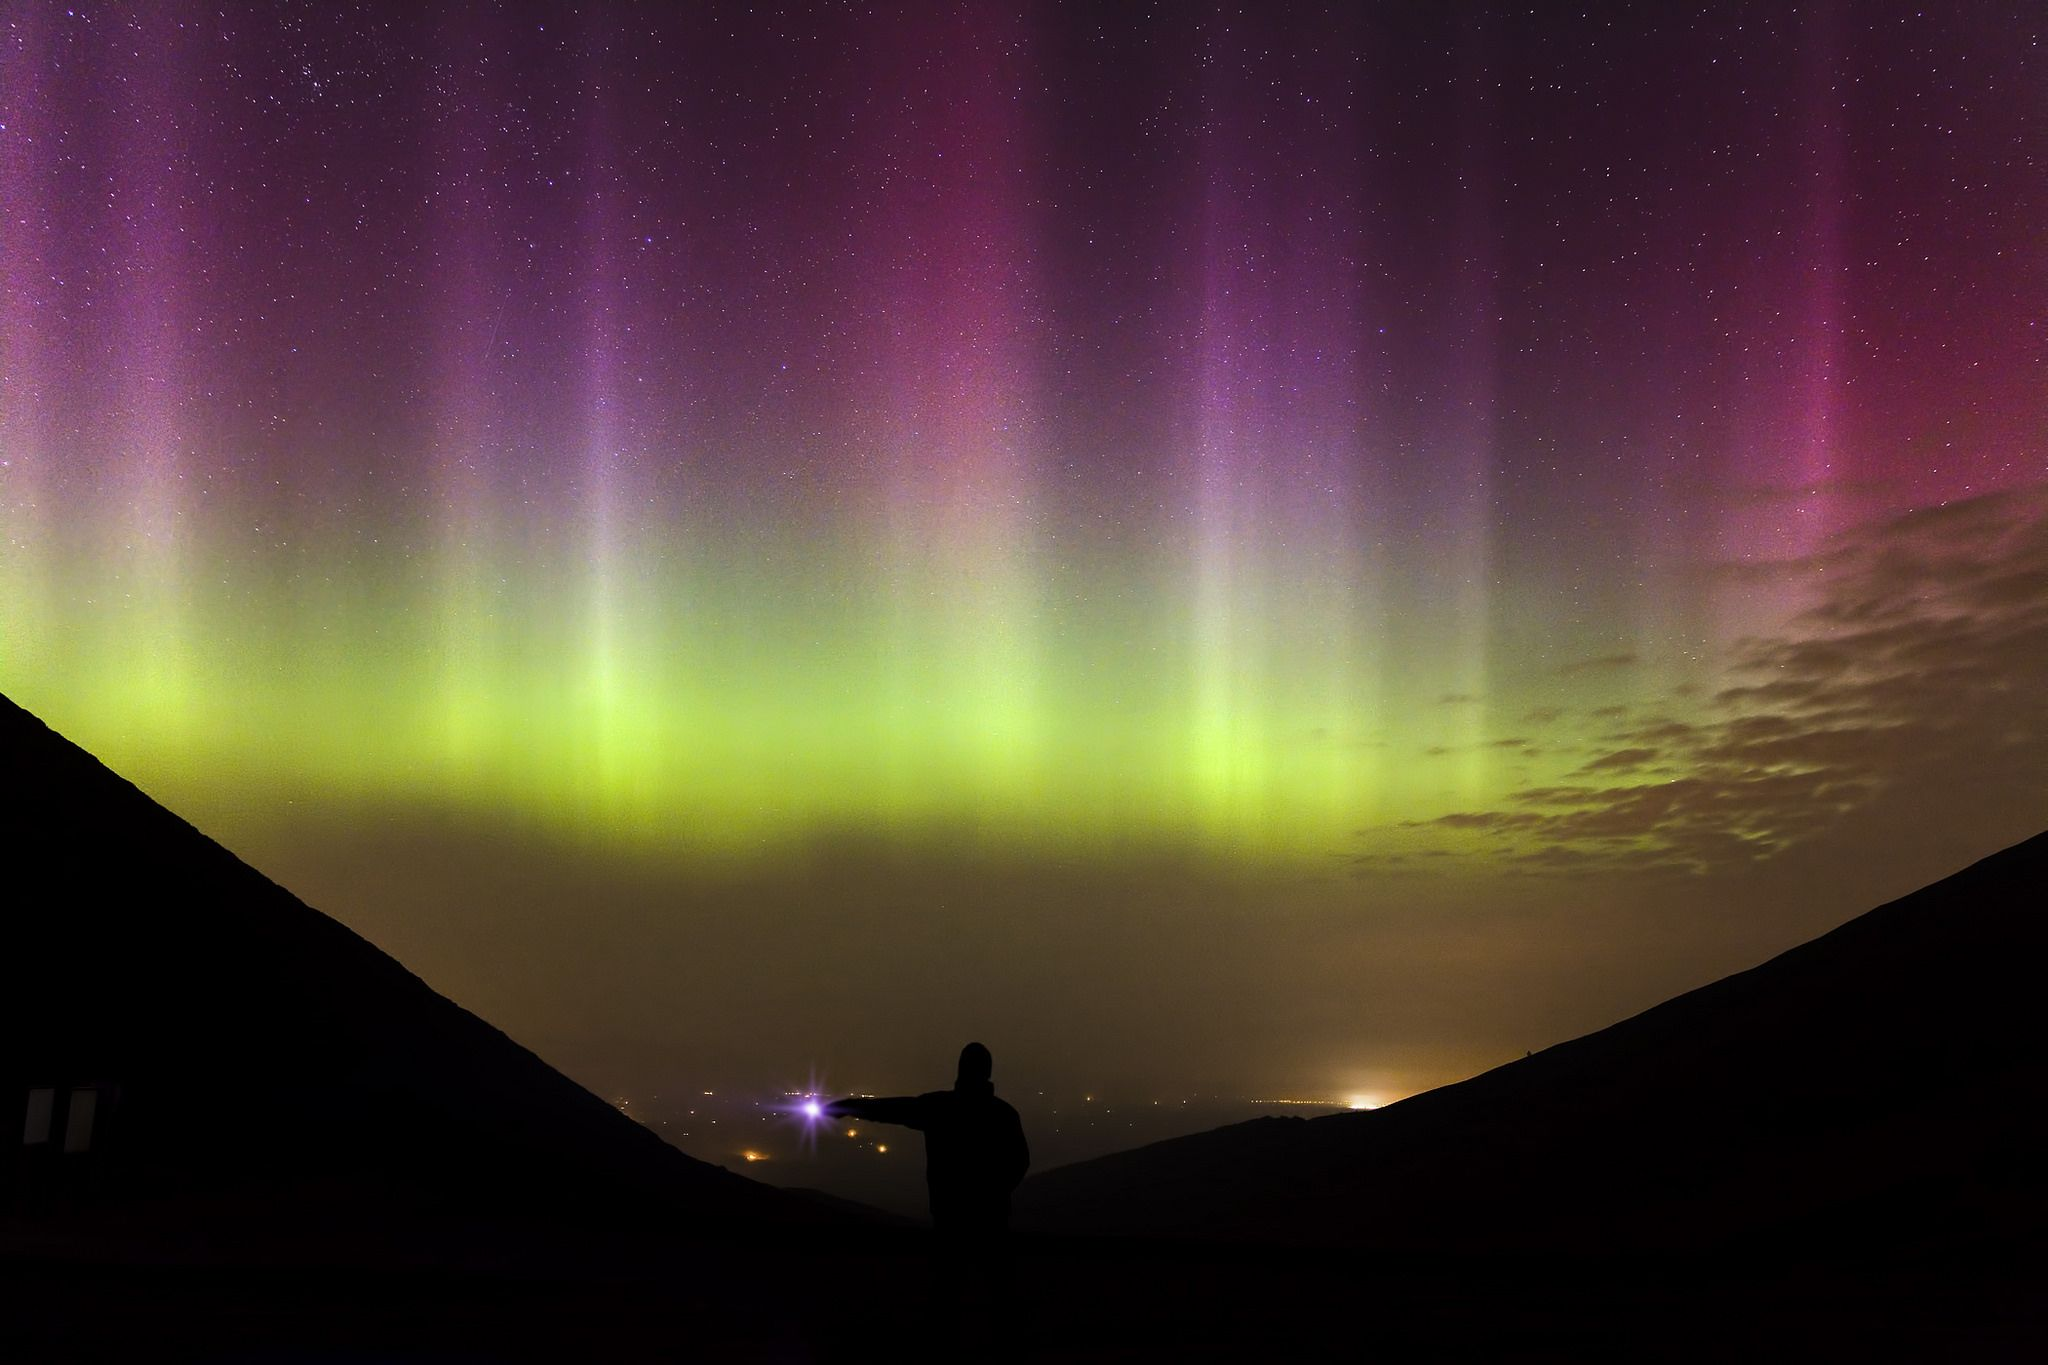 https://flic.kr/p/rLW16p   Aurora Borealis   St. Patrick's Day 2015 will be one that wil live in the memory. The biggest geomagnetic storm of the current cycle took place and most of Europe was treated to a dramatic Northern Lights display. As I was in Cork, a cunning plan was necessary. An afternoon studying weather charts etc lead me to chose a place 1,902 feet above sea level in the Knockmealdown Mountains on the Tipperary/Waterford border. The gamble paid off and at 2300 the cloud and…